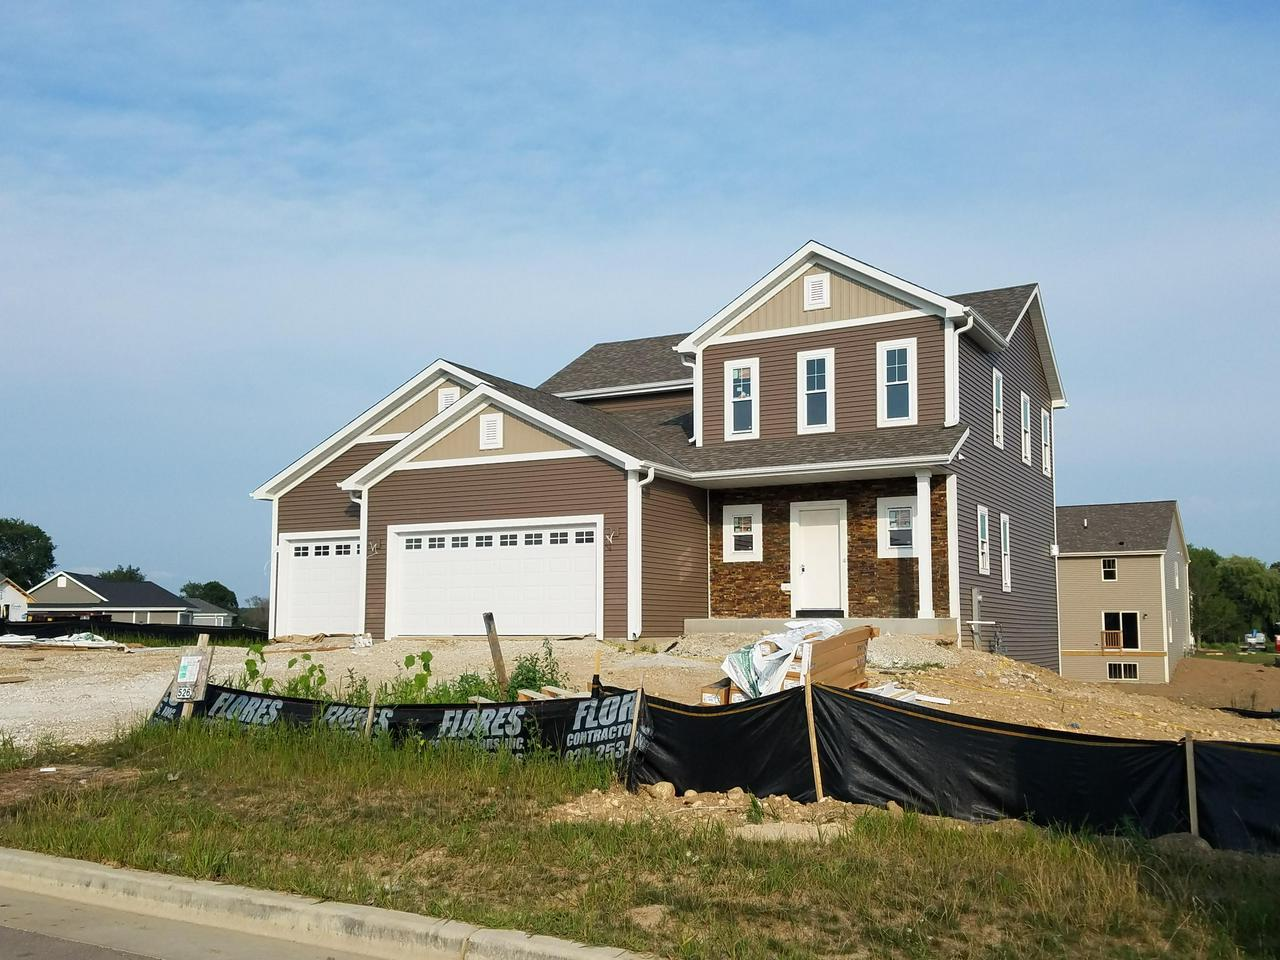 just starting new construction. 3 br 2.5 baths huge laundry/mud room w lockers and storage. 9' basement with a full exposure to finish for another 1500 ft of living space. great schools and great location. buy now to make your choices.